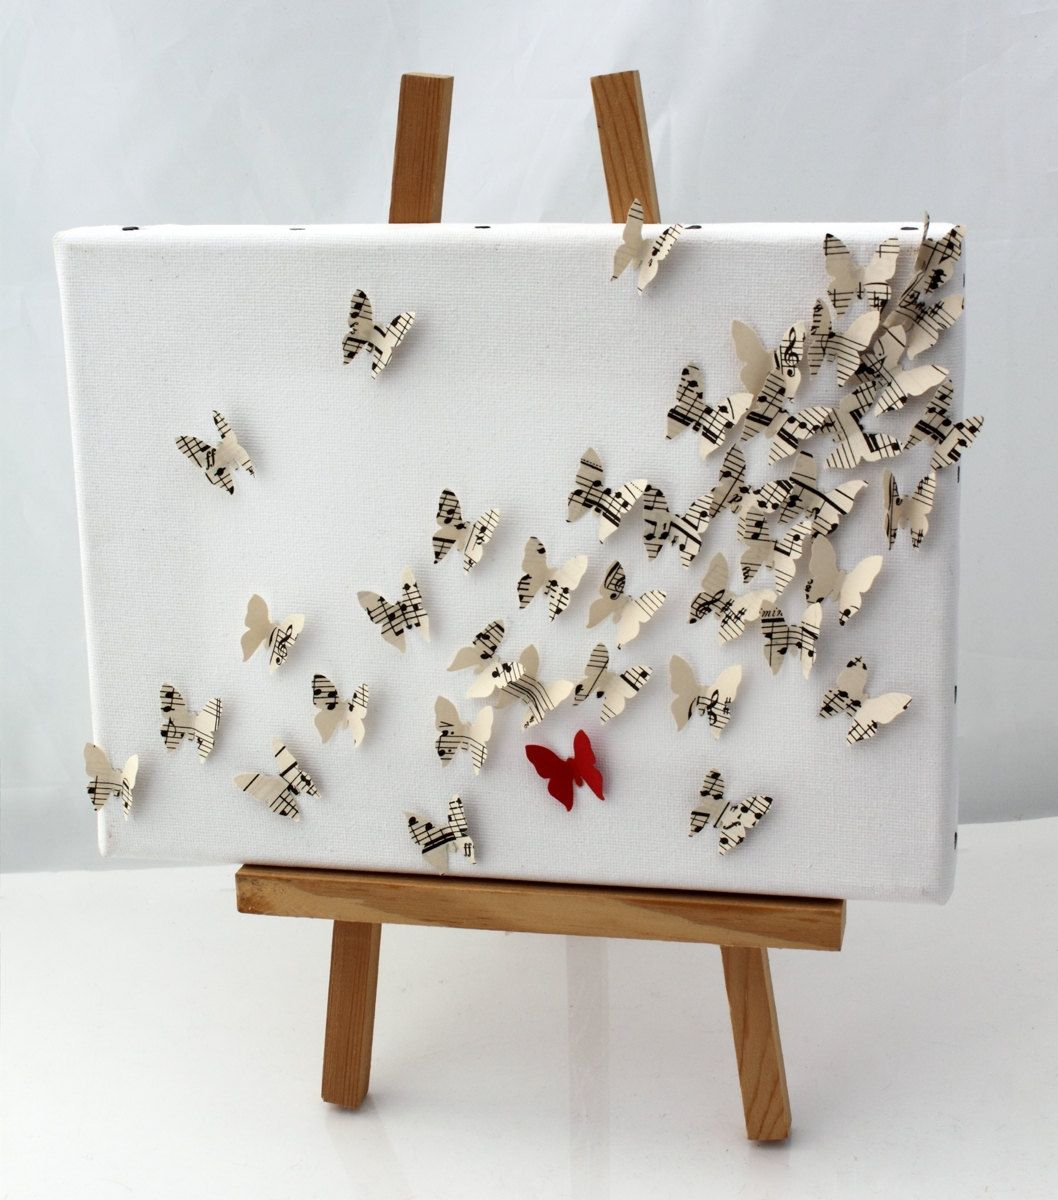 3d Butterfly Wall Art Collage On Canvas Upcycled Vintage Sheet Music And Red Card Butterflies First Paper Anniversary Gift 9x7 Inch 3d Butterfly Wall Art Art Collage Wall Butterfly Wall Art